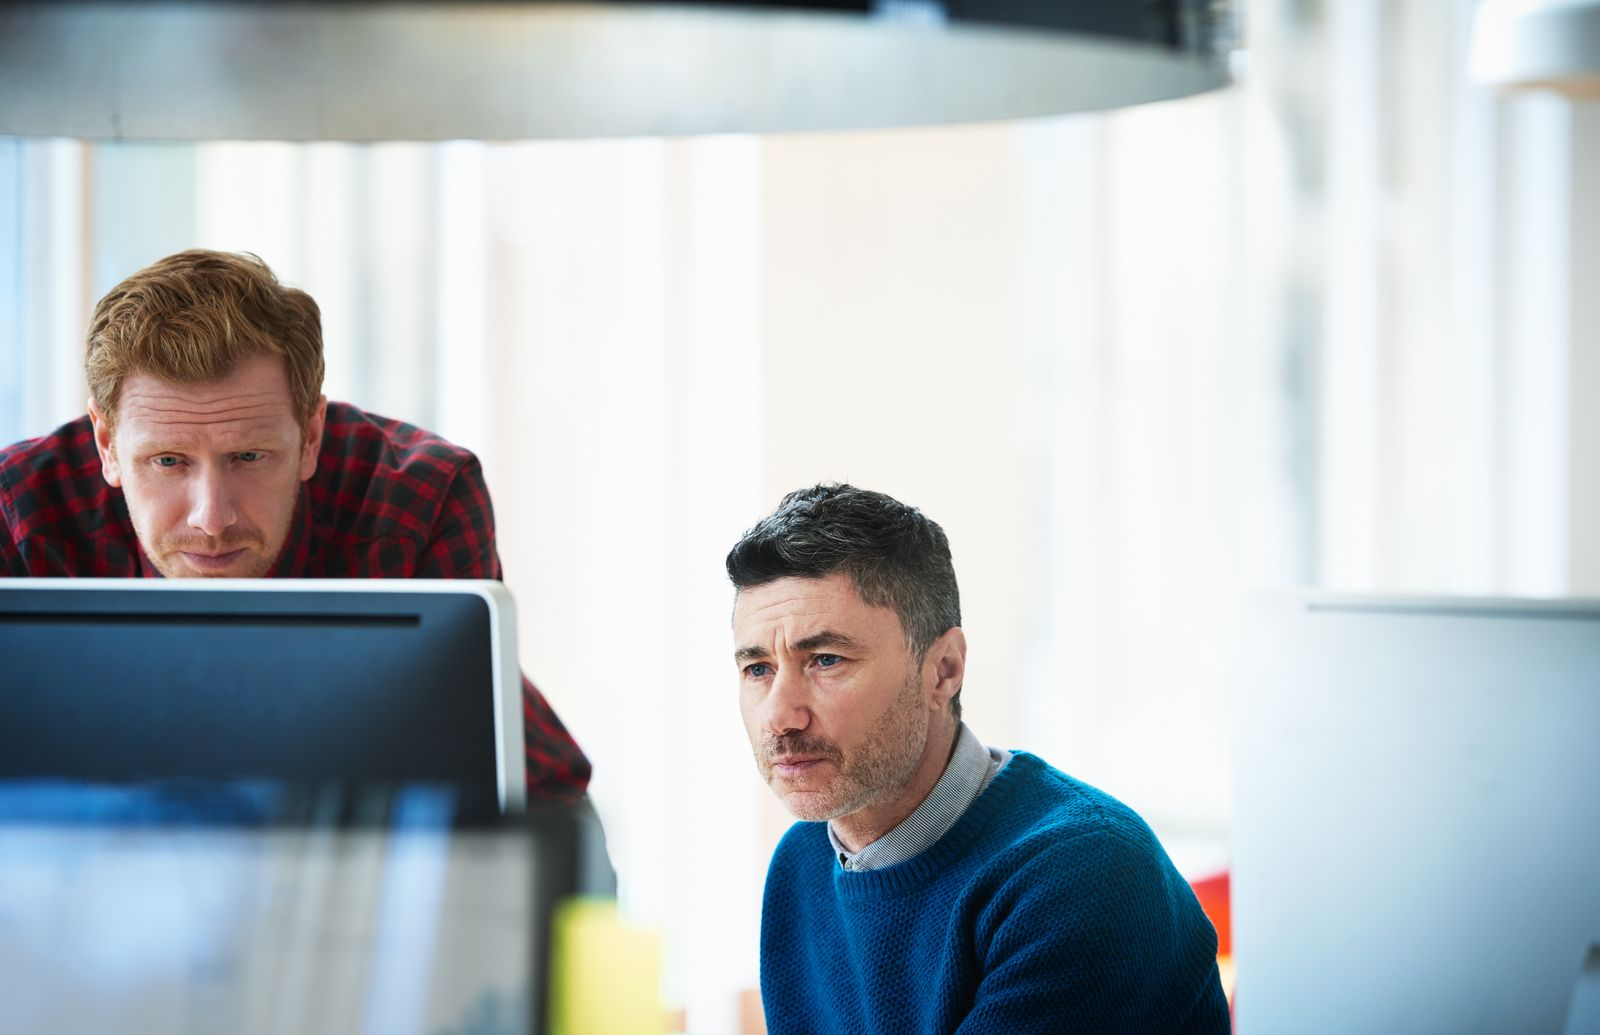 Two colleagues contemplating a project on computer